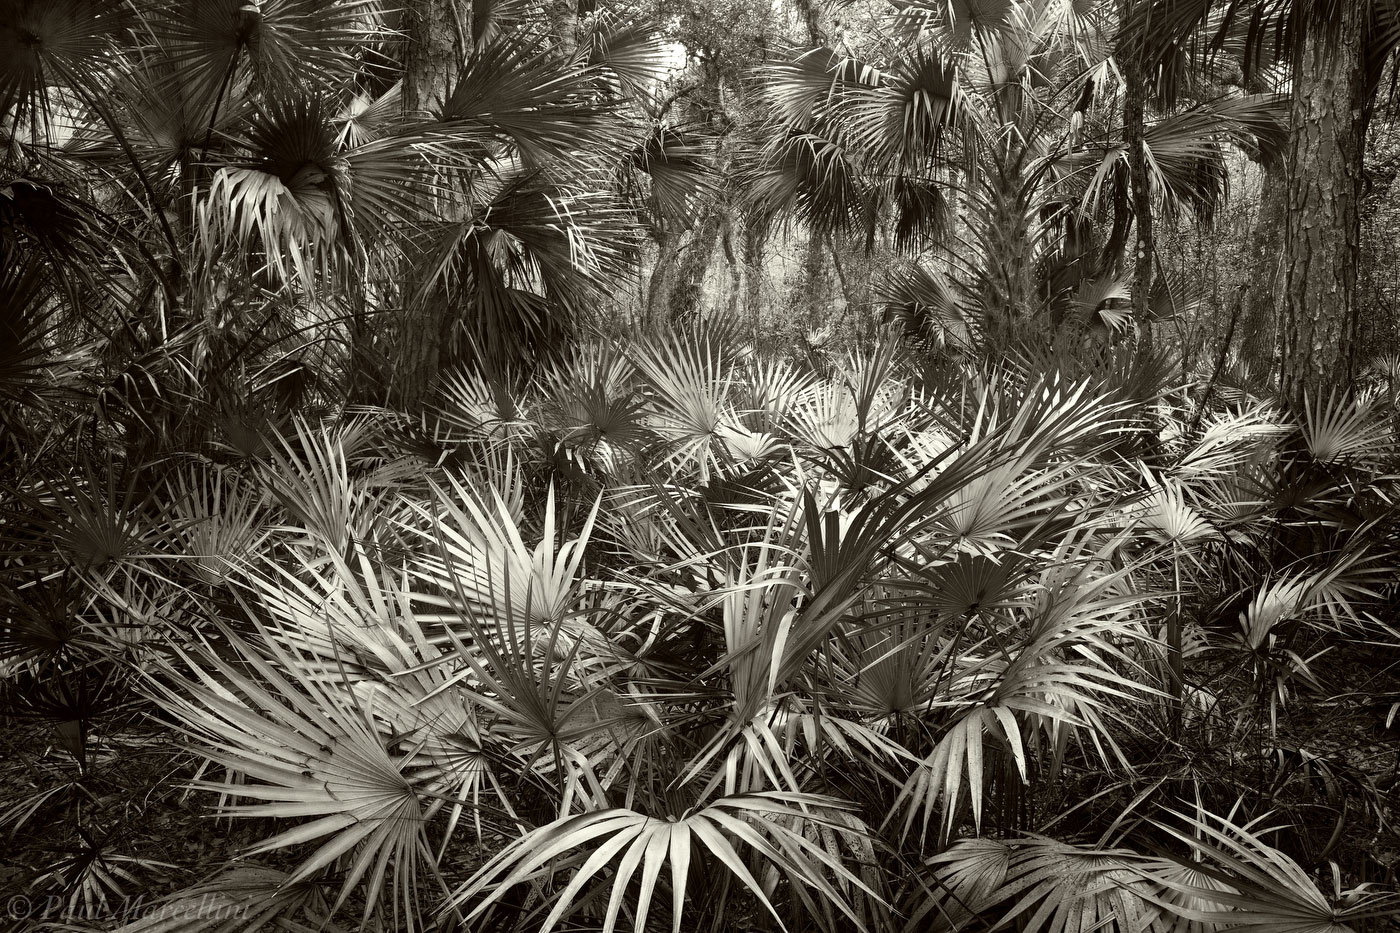 Saw Palmetto, Serenoa repens, Cabbage Palms, Sabal palmetto, fisheating, creek wildlife management, Fisheating Creek, florida, south florida, nature, photography, , photo